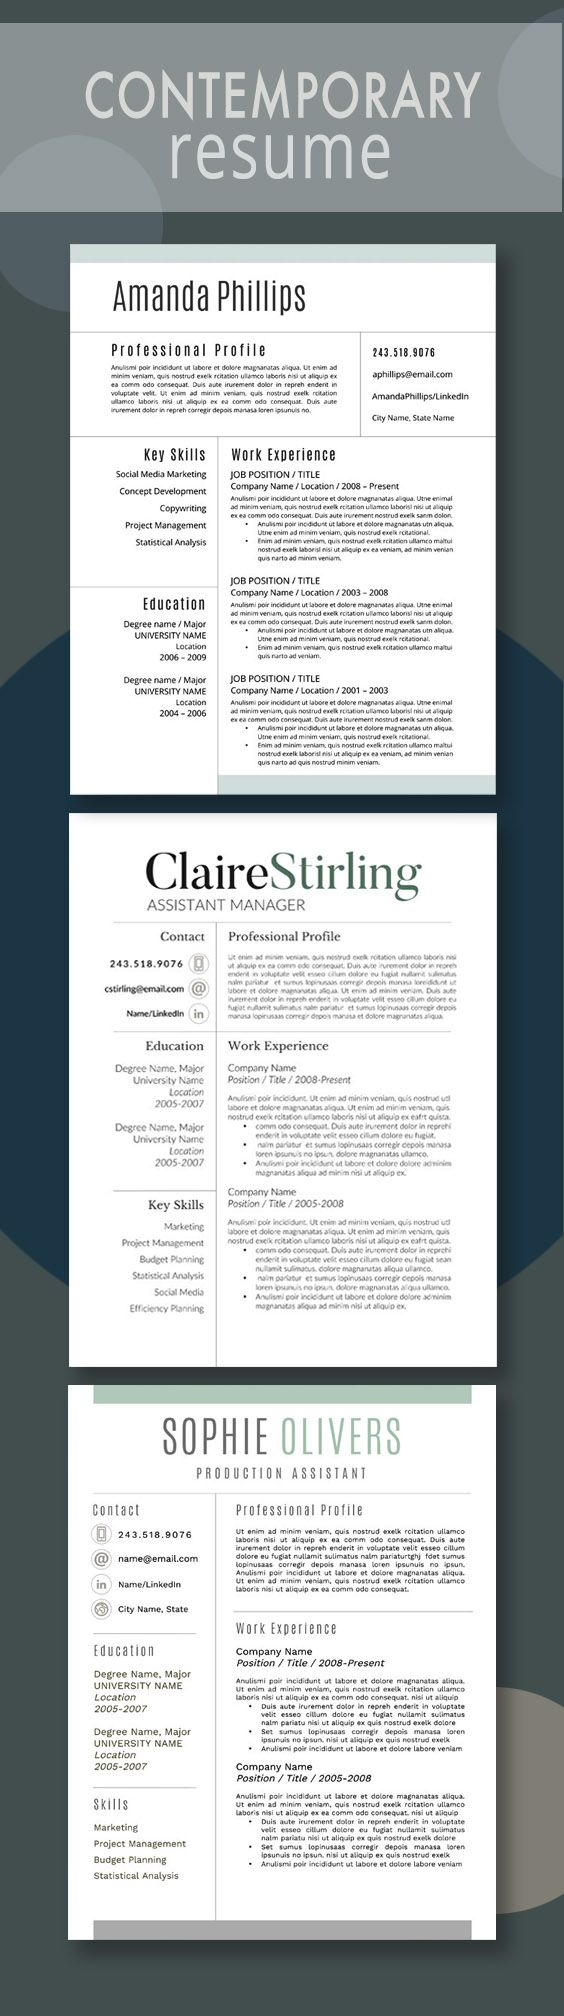 making a resume for free%0A Contemporary Resumes from Resume Foundry